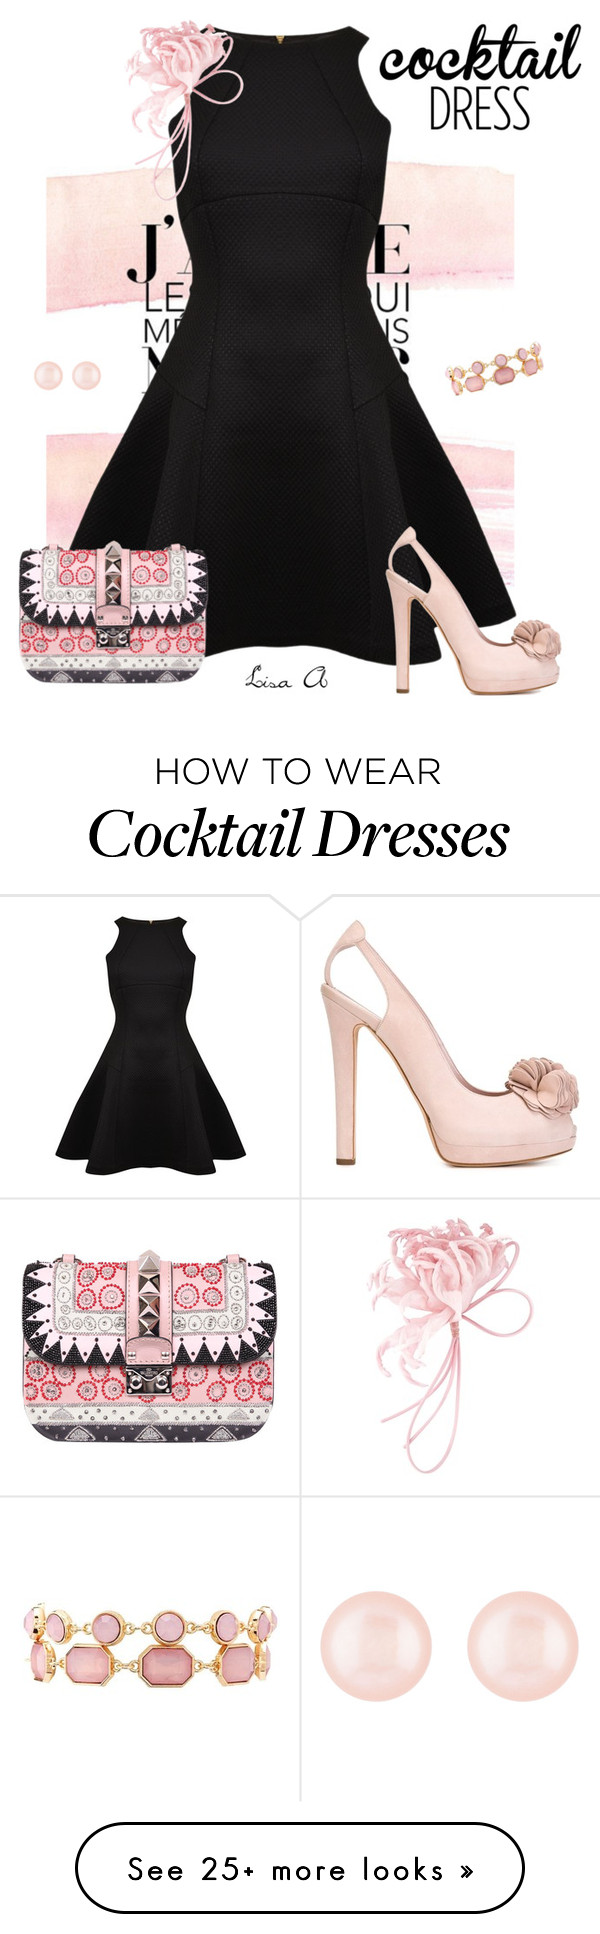 """""""Cocktail Dress"""" by labond on Polyvore featuring Ted Baker, Valentino, P.A.R.O.S.H., Henri Bendel, Charlotte Russe, Alexander McQueen, Pink, black, Pumps and cocktaildress"""